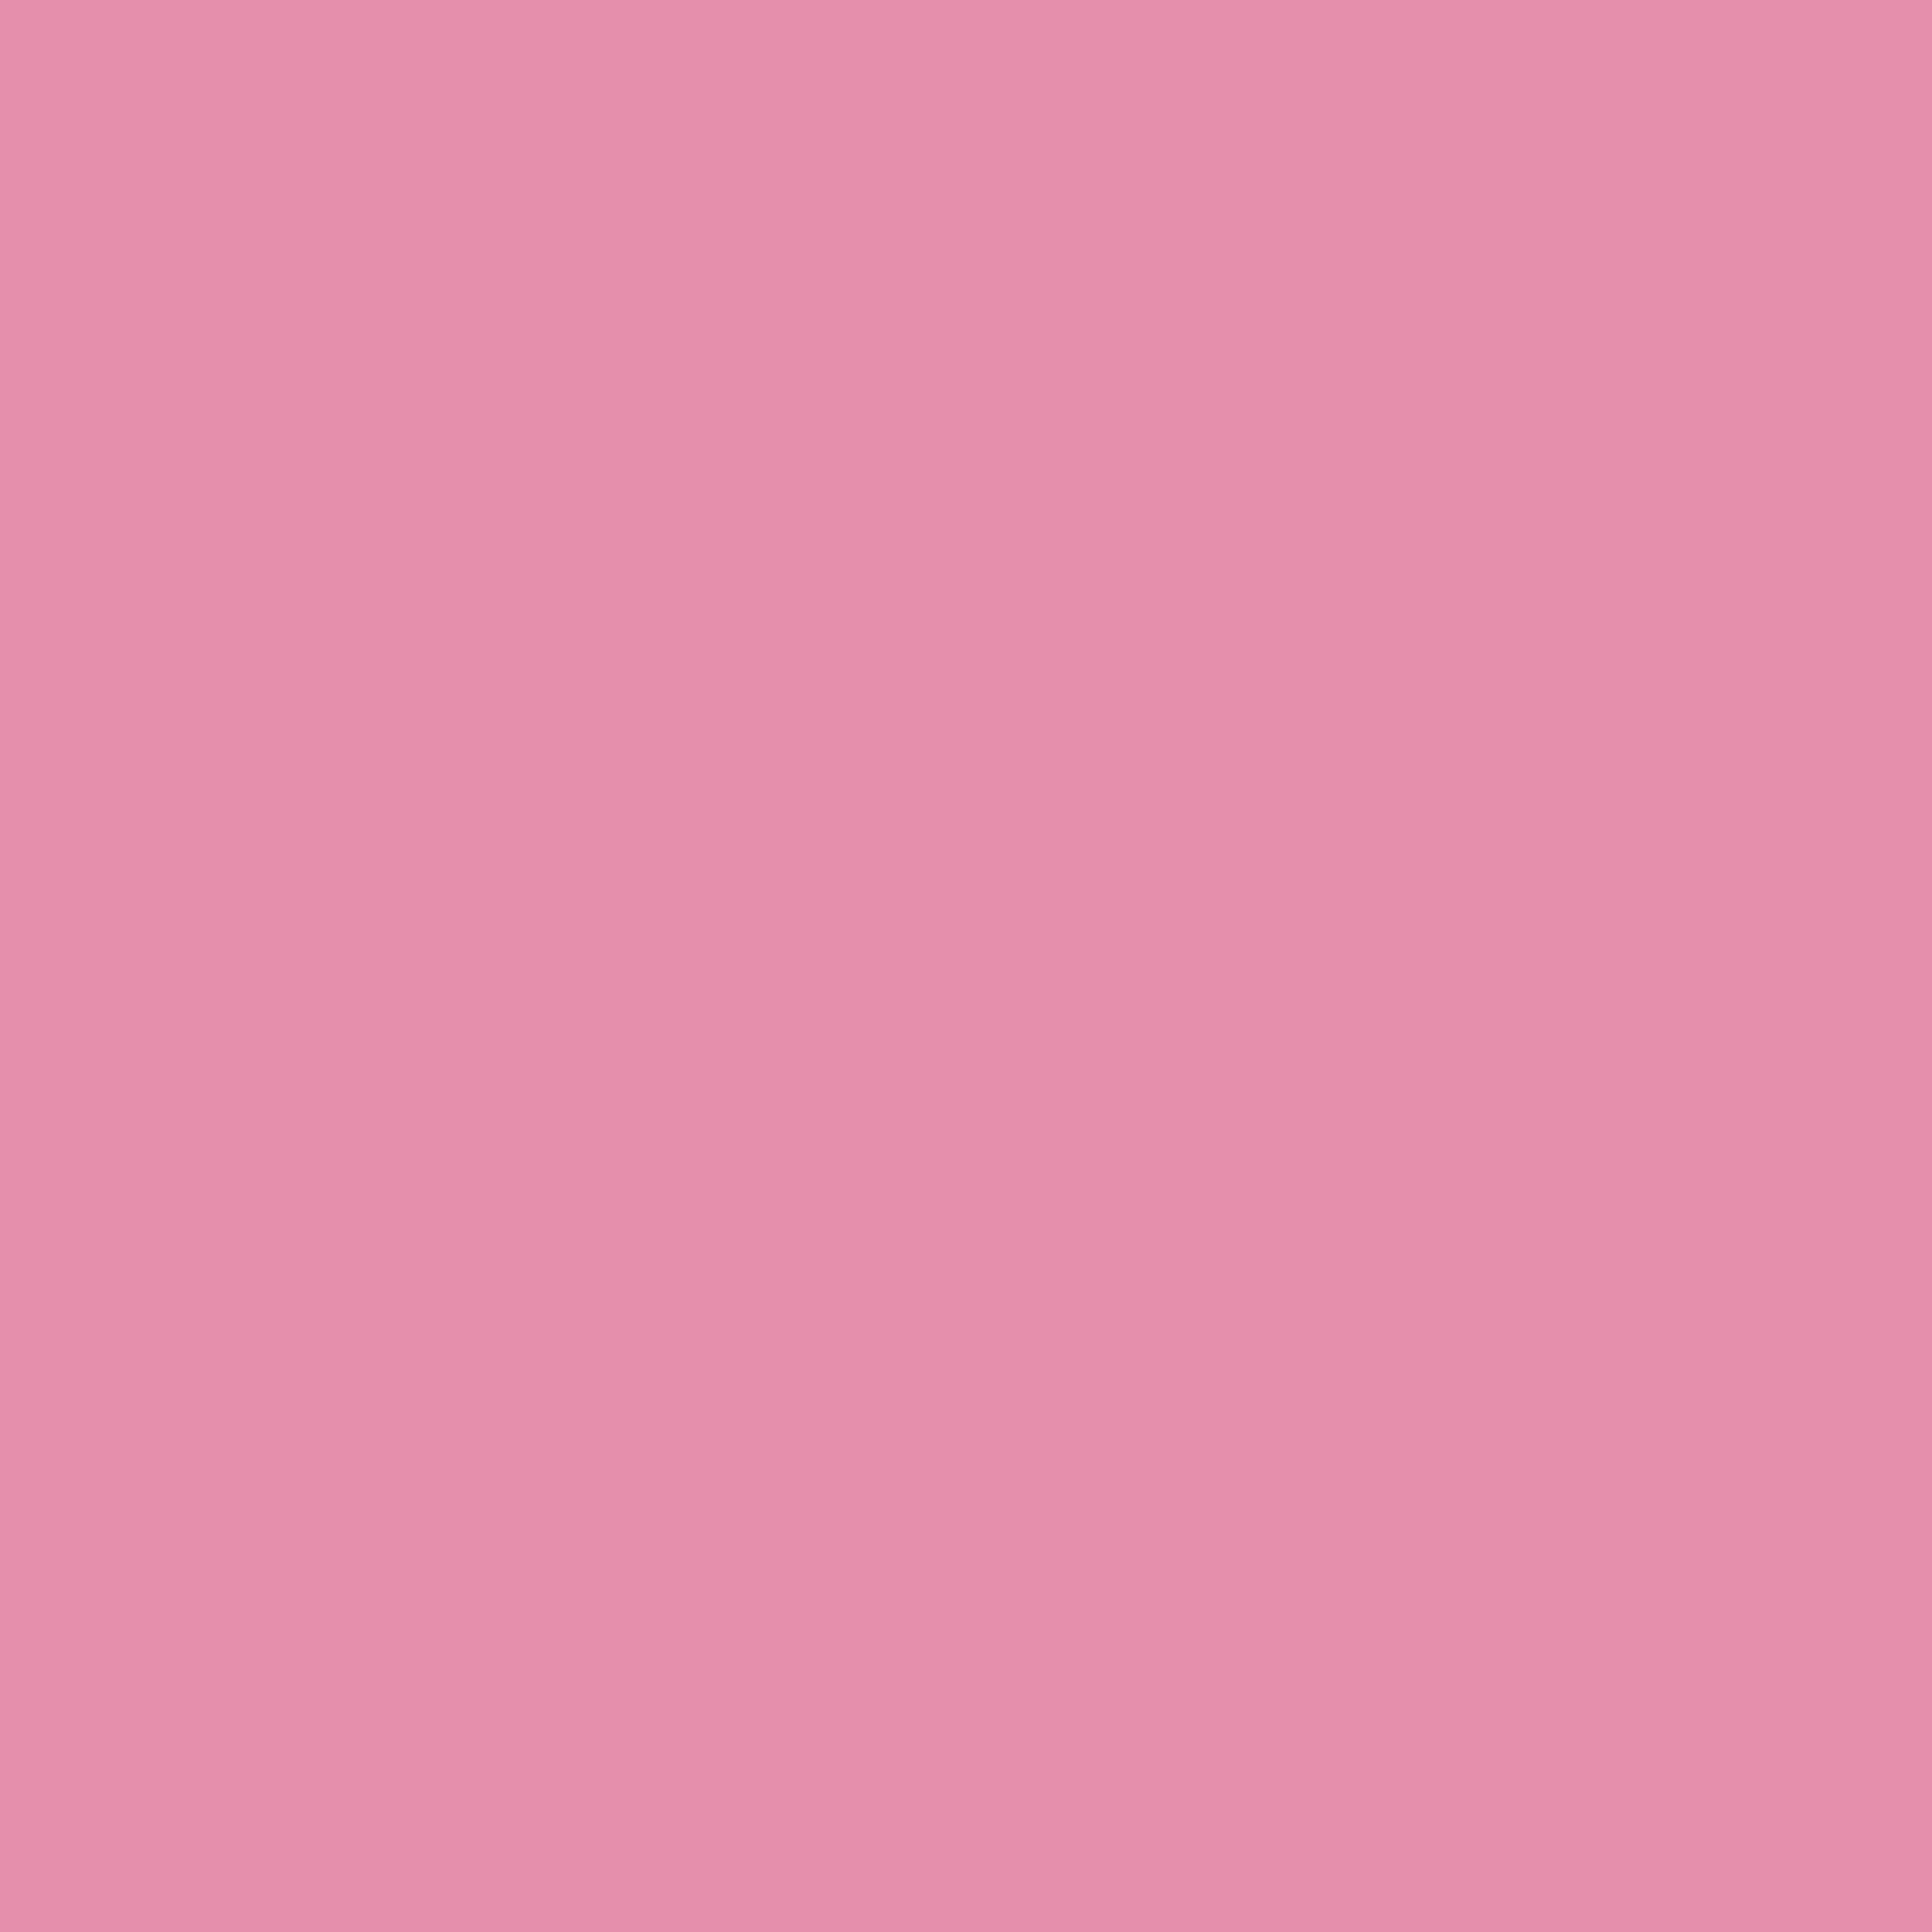 3600x3600 Light Thulian Pink Solid Color Background